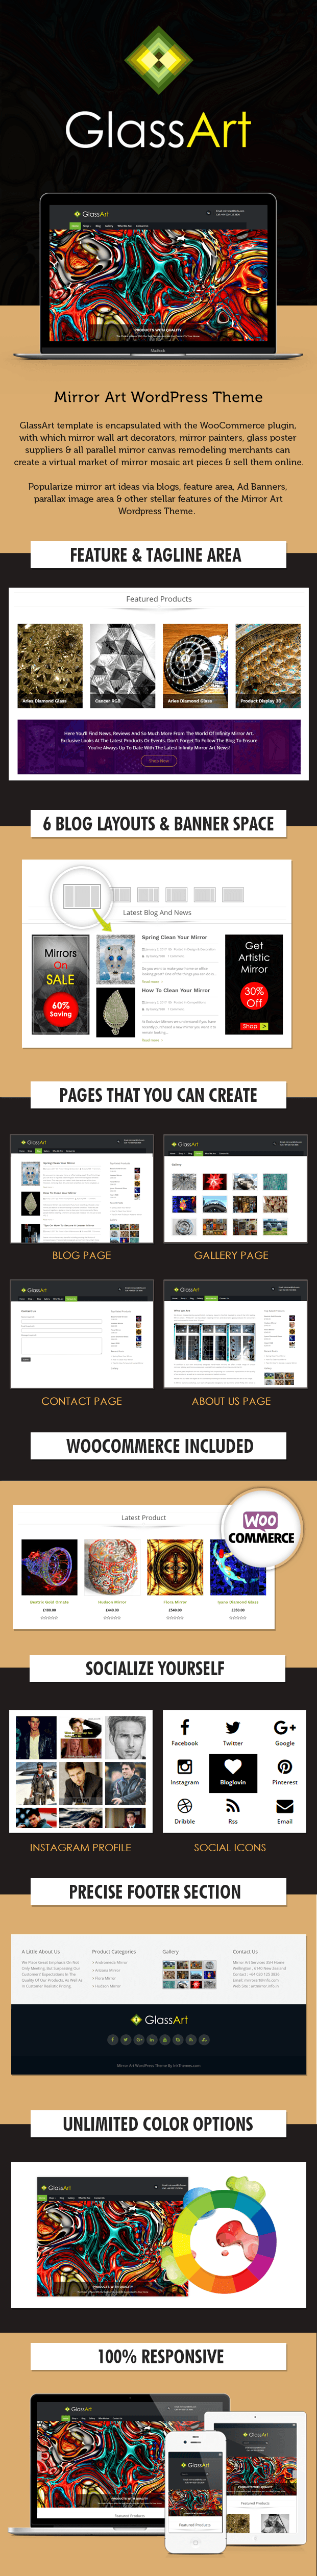 Mirror Art WordPress Theme